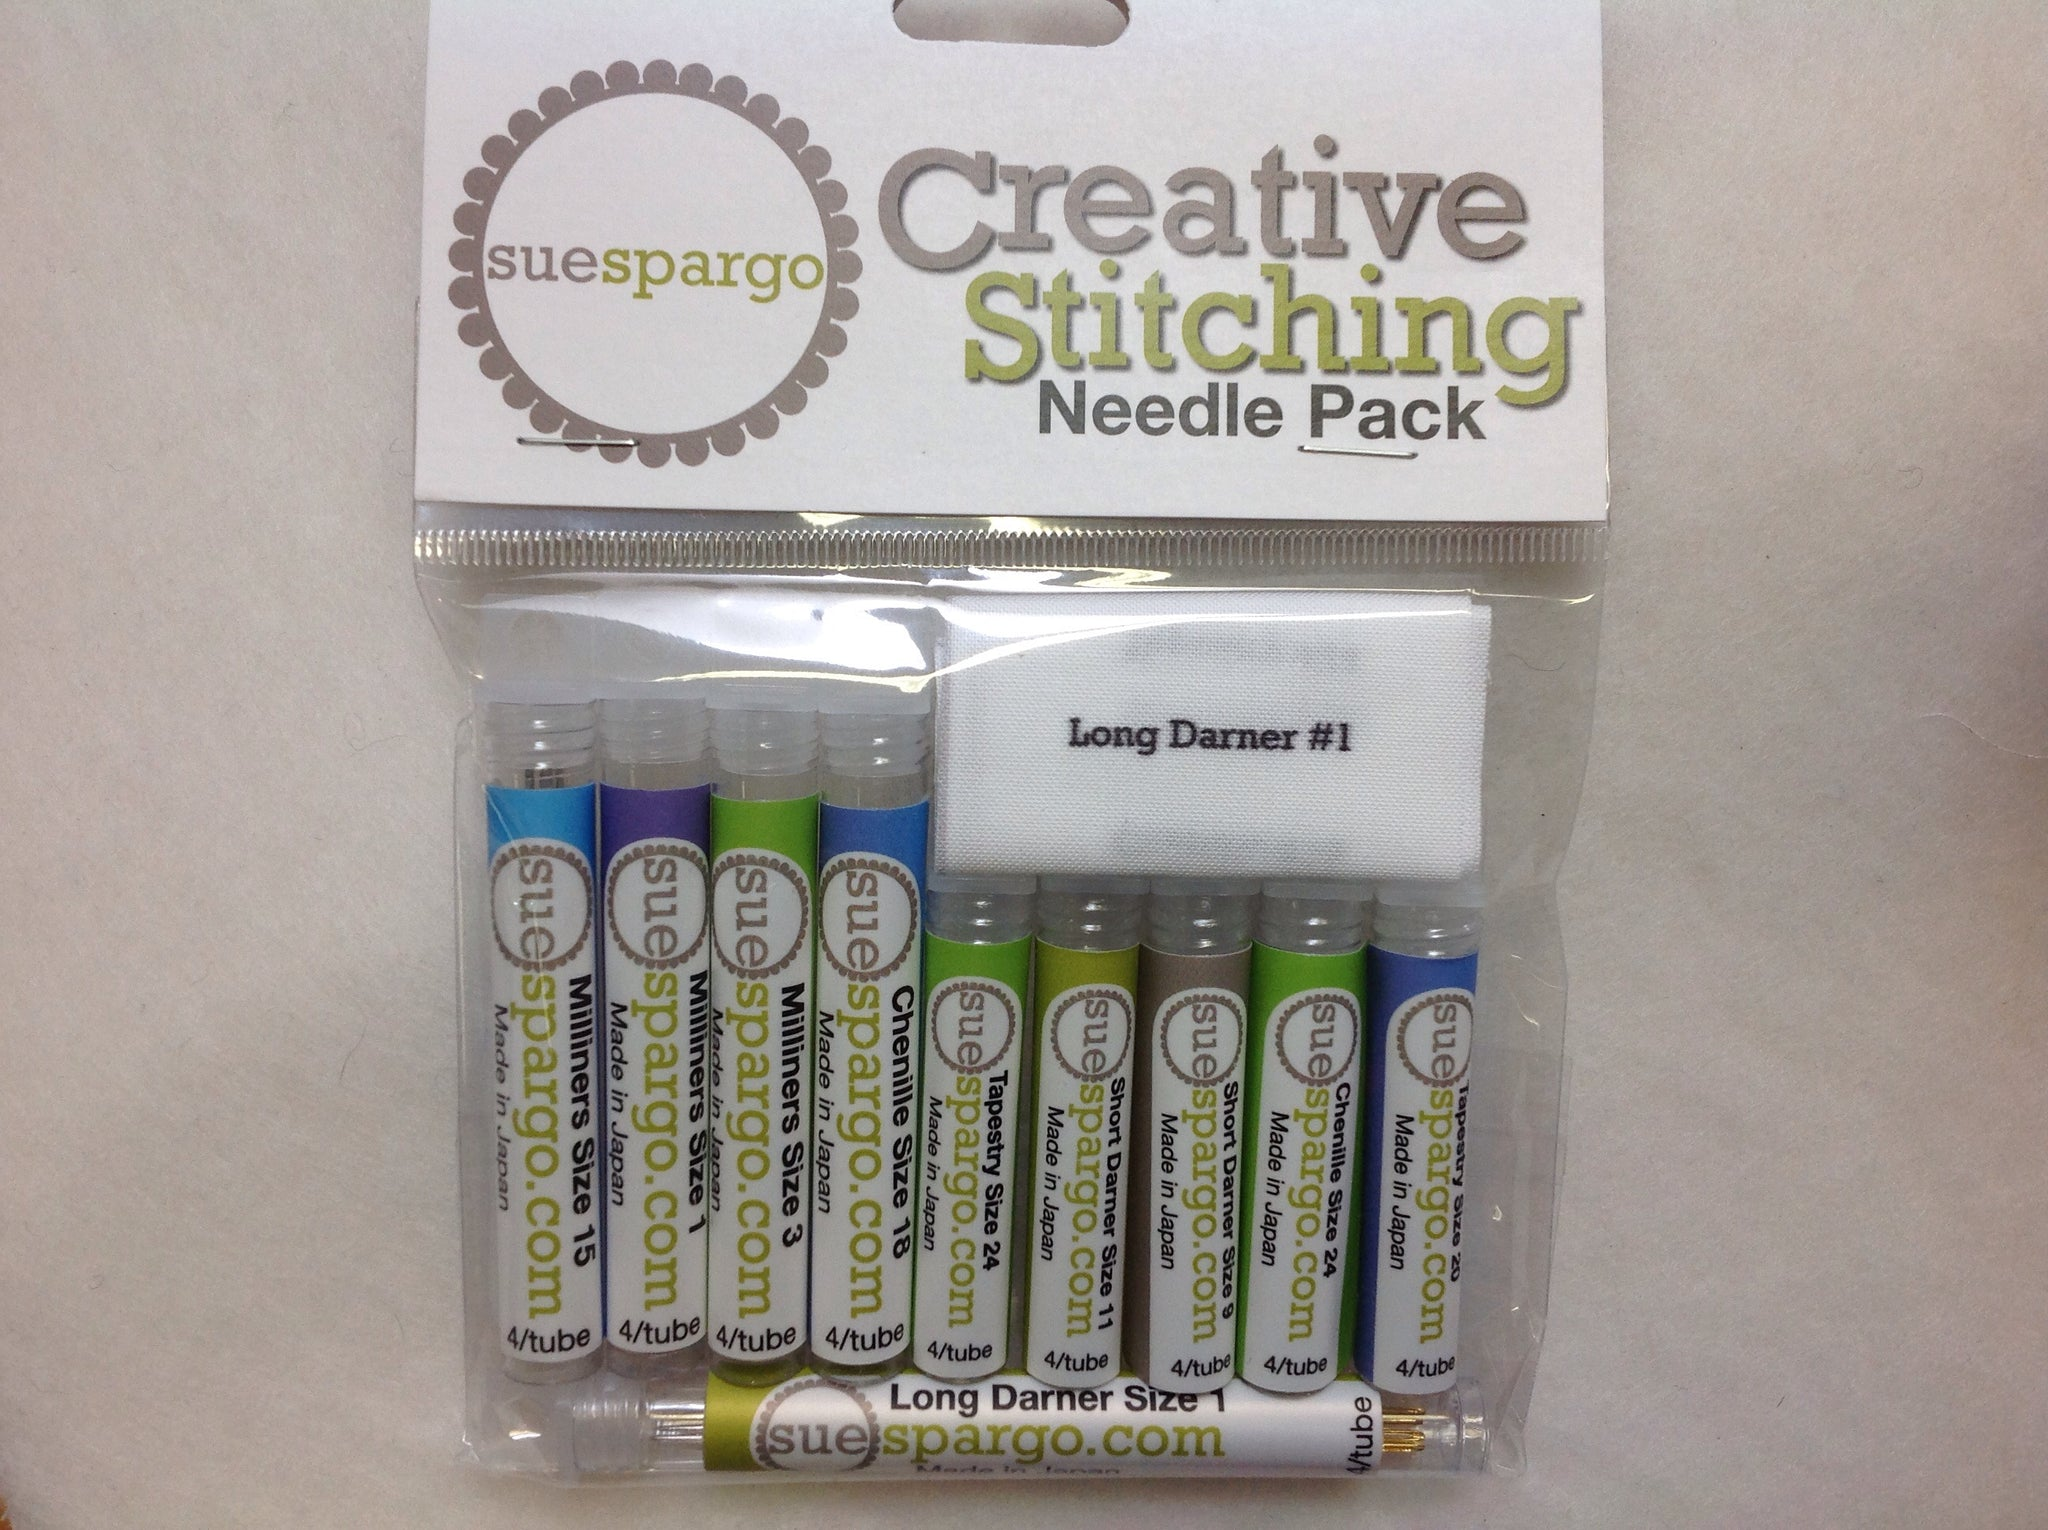 Sue Spargo Needle Pack - Creative Stitching